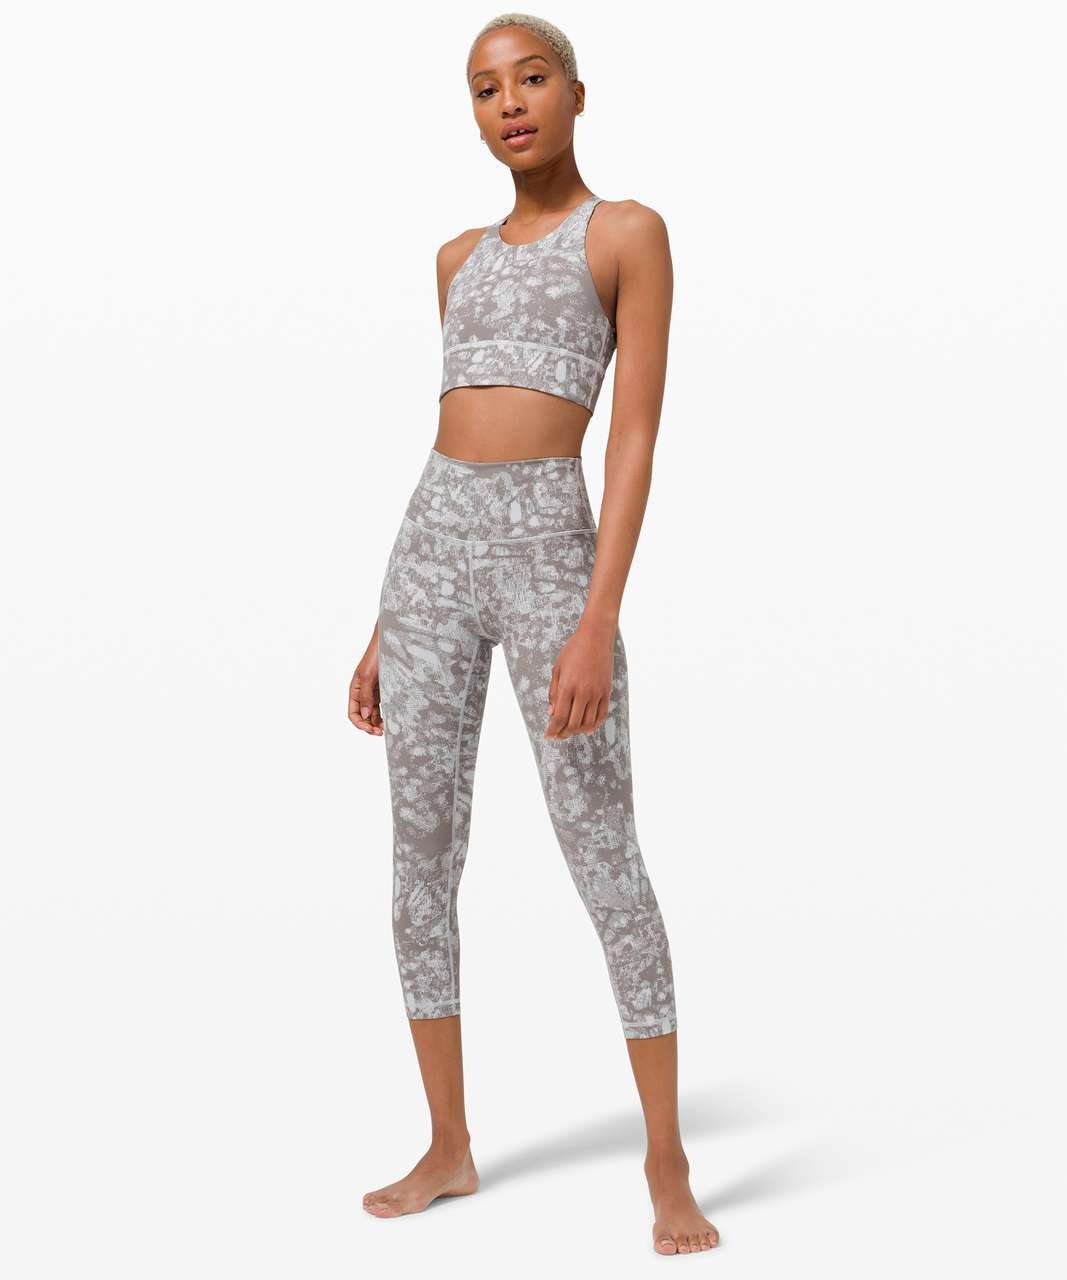 Lululemon Free to Be High-Neck Long-Line Bra - Wild *Light Support, A/B Cups - Synthesize Jacquard Starlight Grey Fog